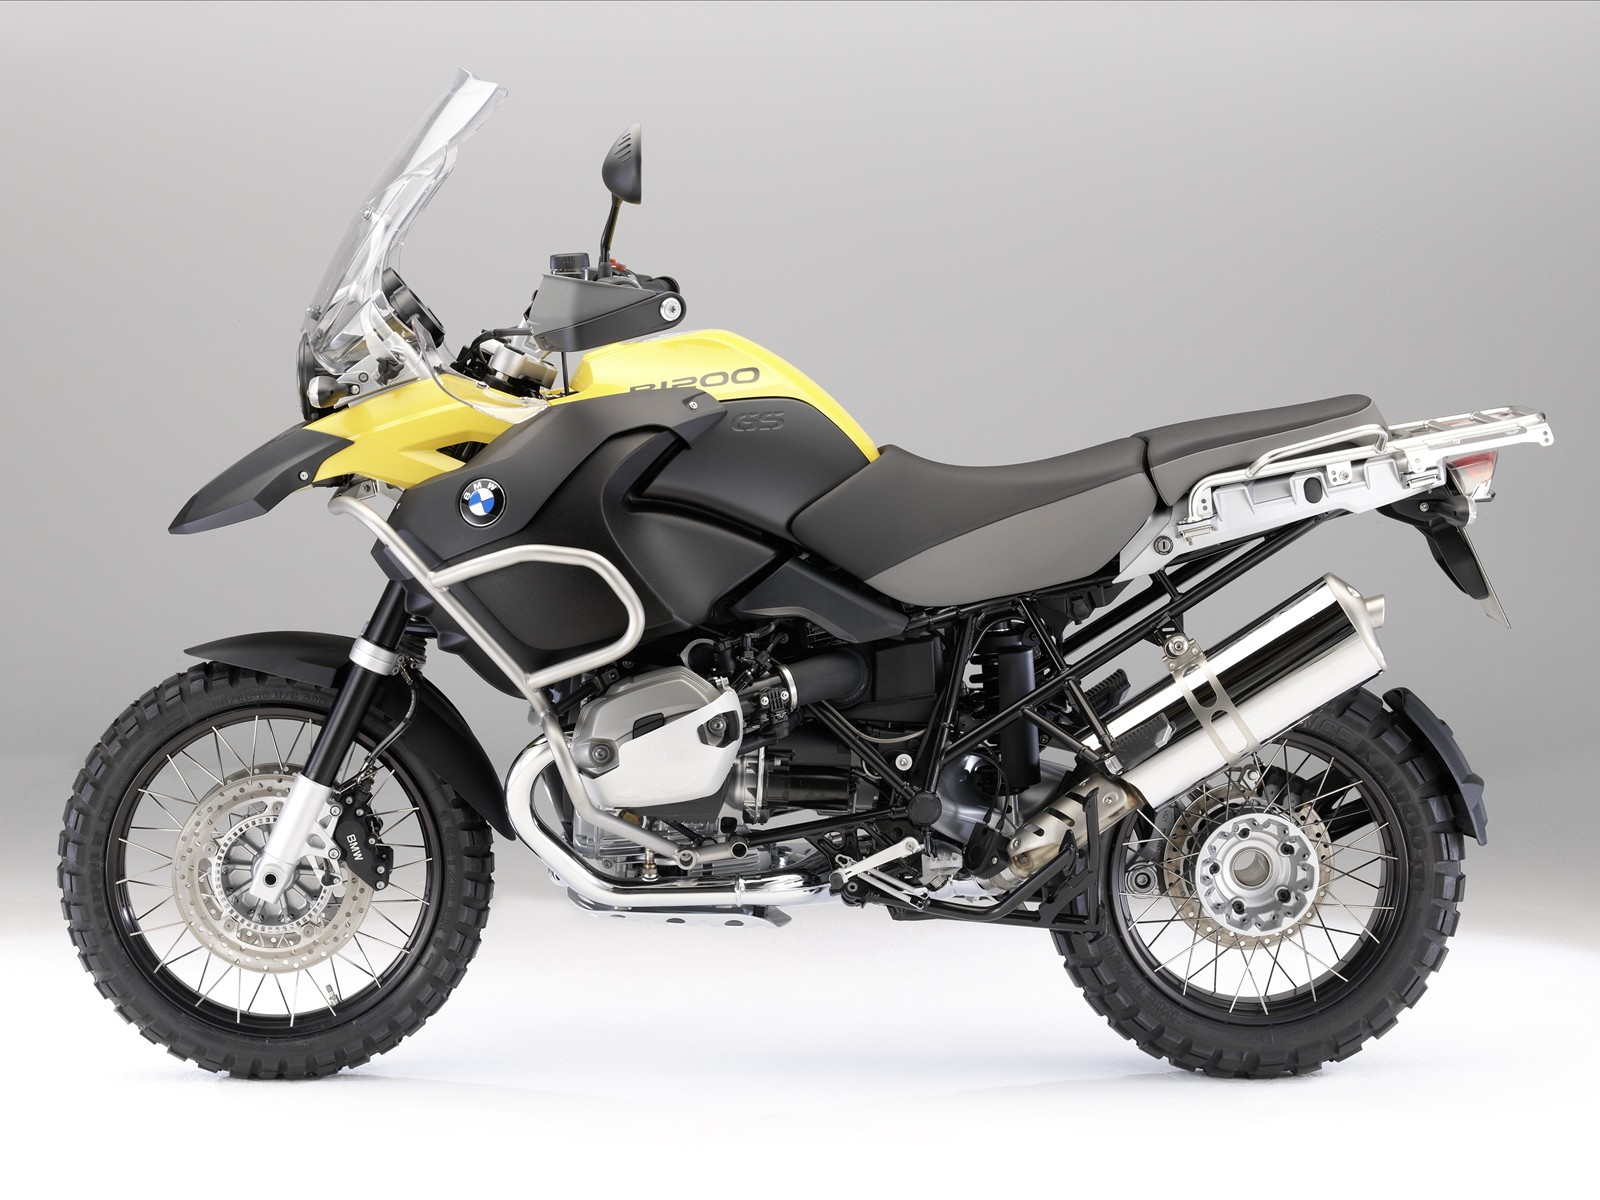 http://4.bp.blogspot.com/_71VYESfu88A/SwIG1tOhq2I/AAAAAAAABOE/cFVyvRSPWa8/s1600/The-New-BMW-R-1200-GS-Adventure-28.jpg